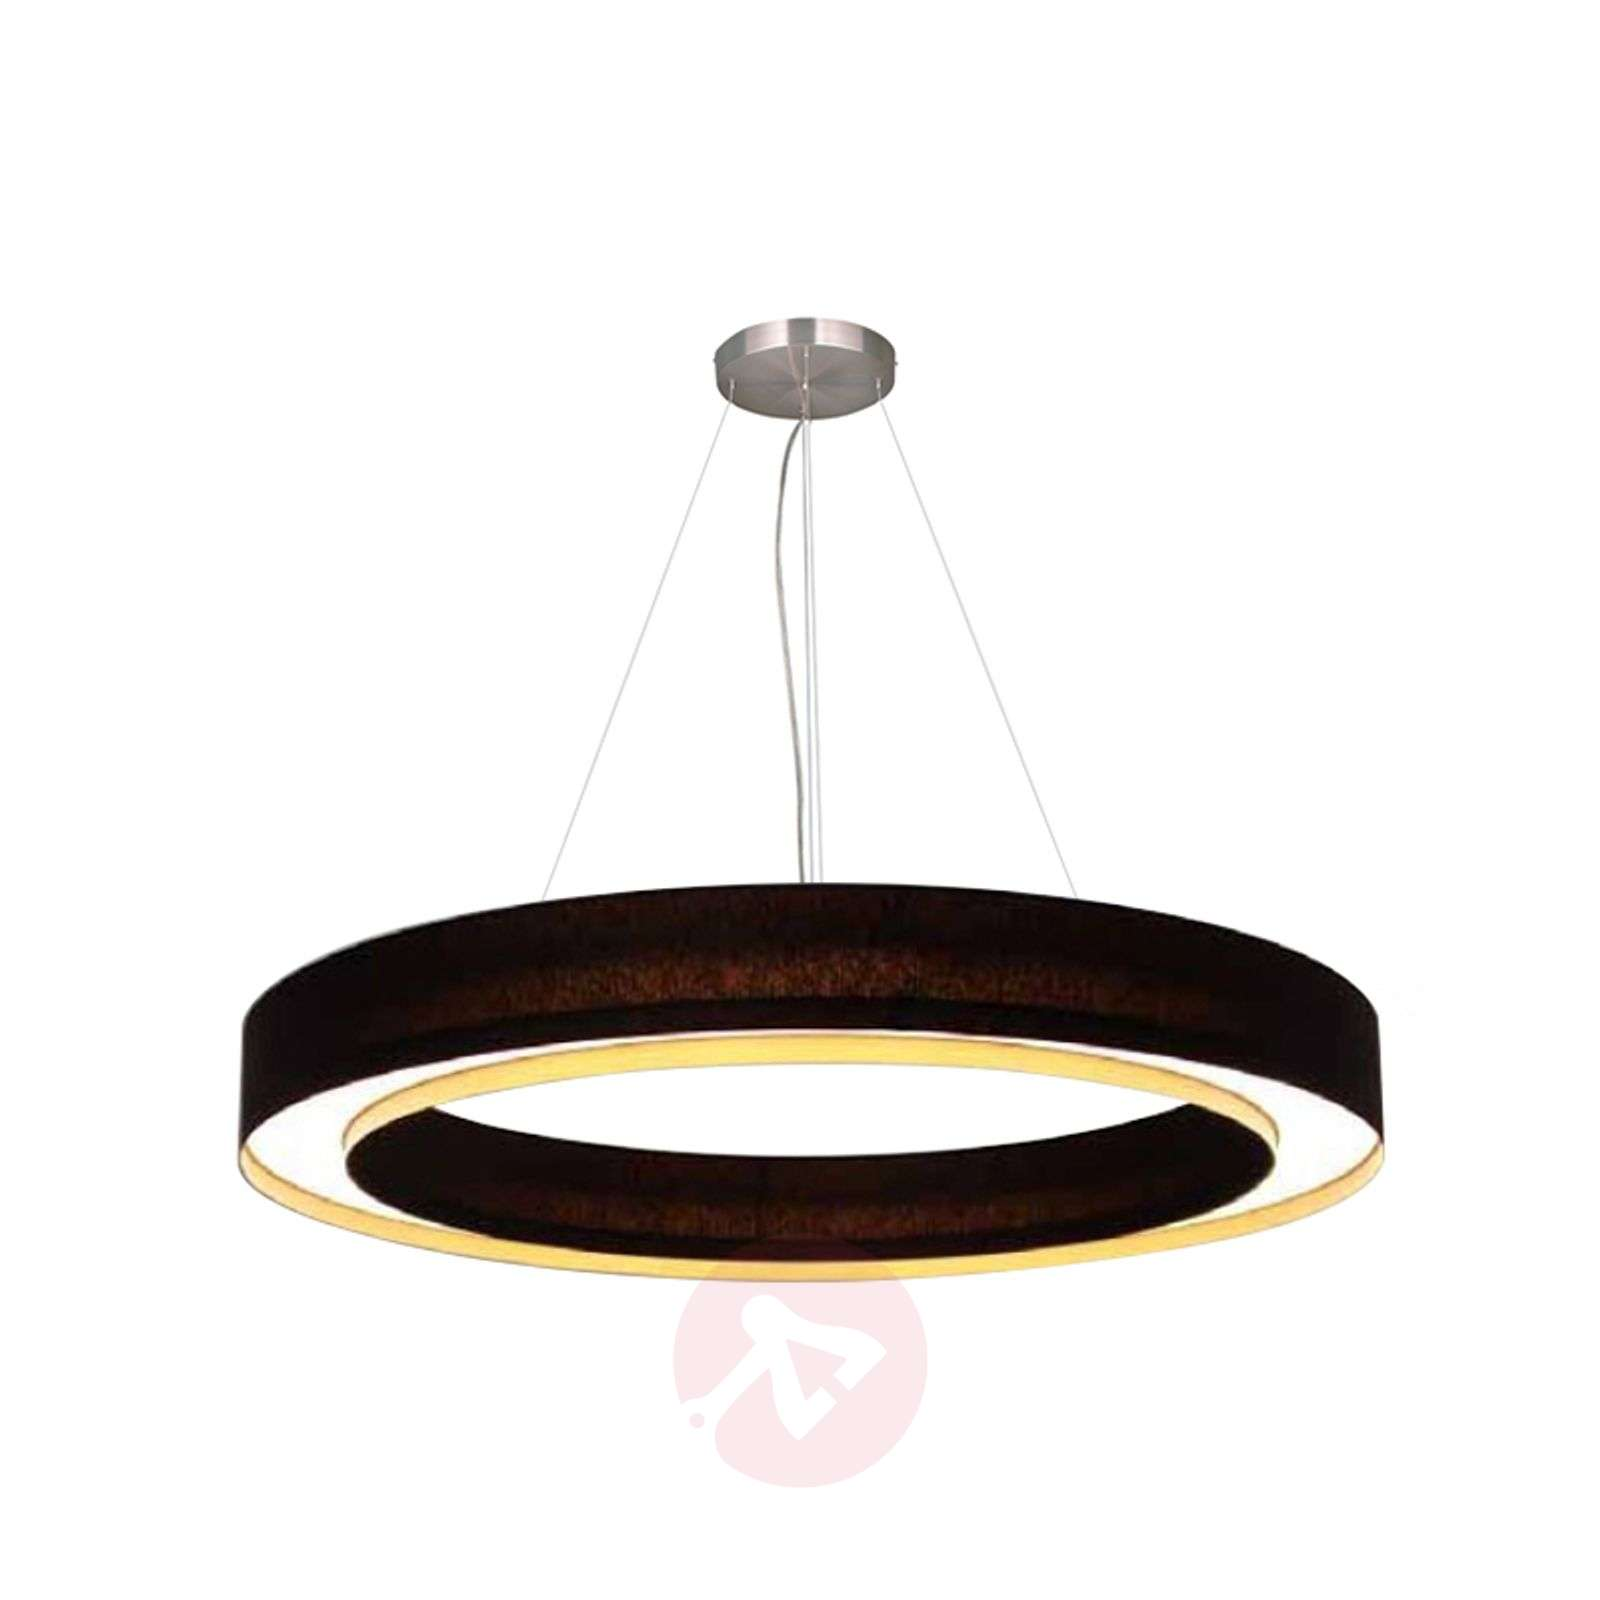 Ringvormige LED hanglamp Cloud-7516339X-01